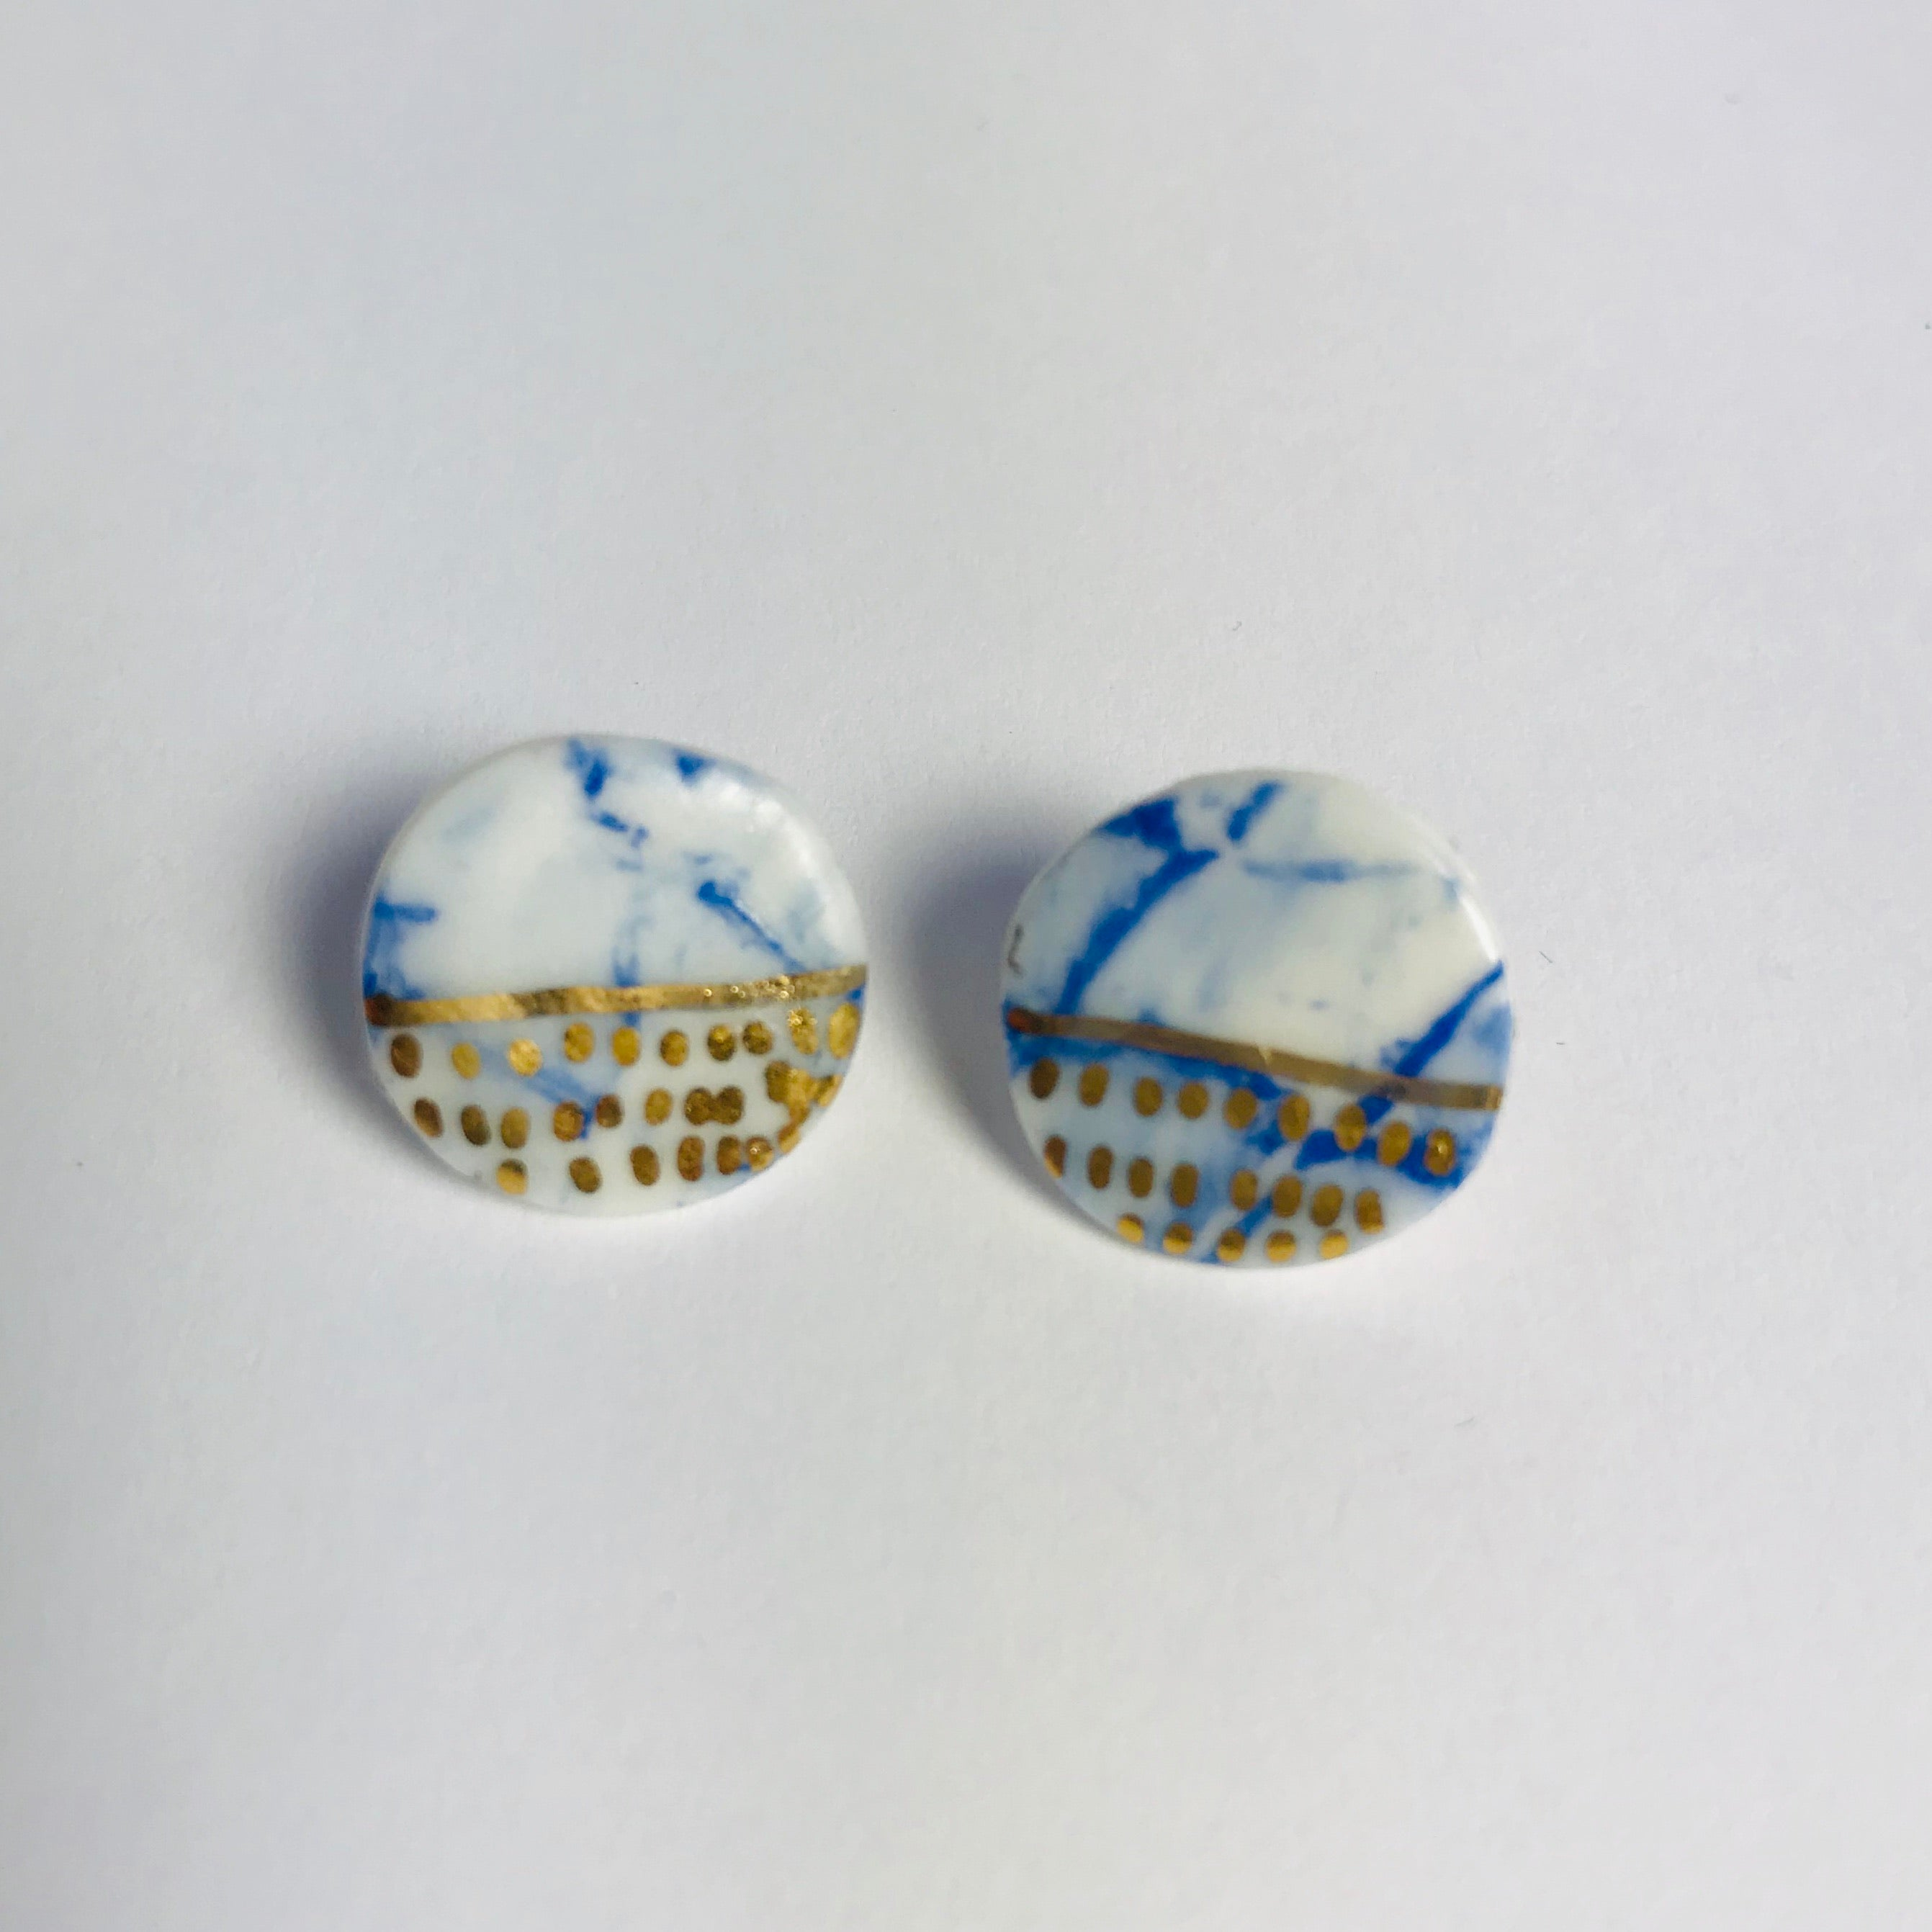 Blue, white and gold stud earrings